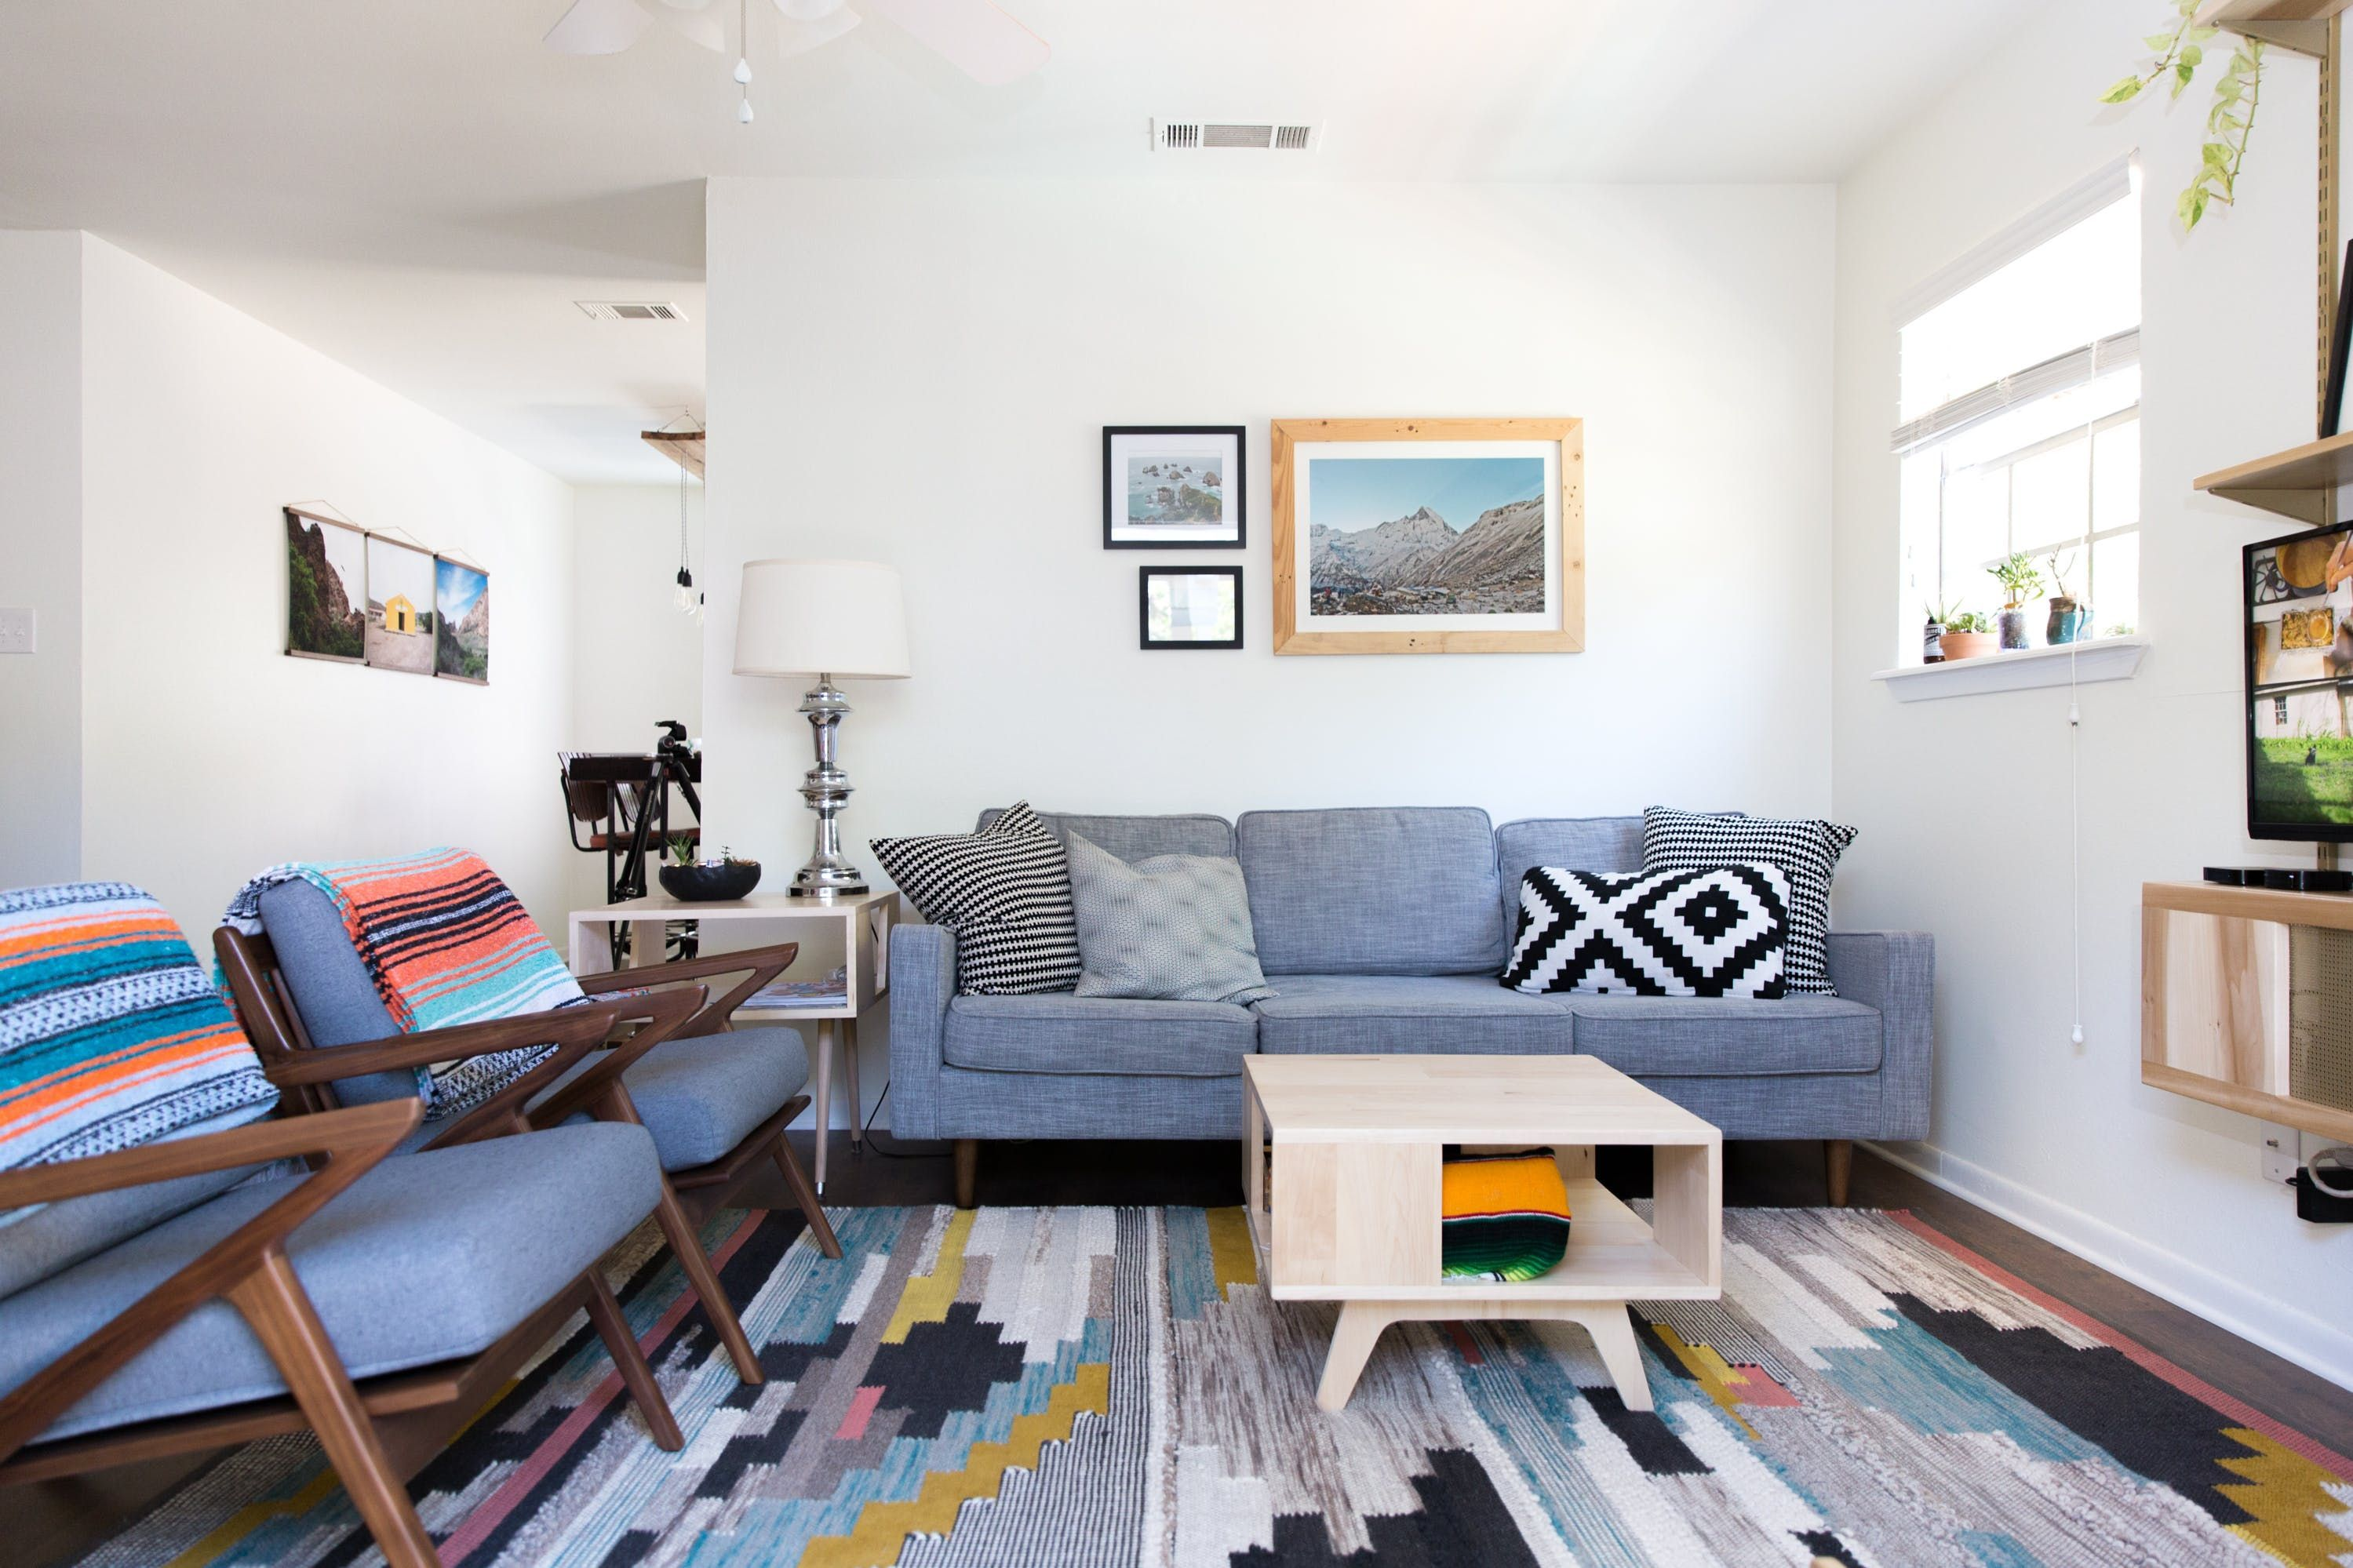 Lara And Adam Bought Their South Austin Home About Six